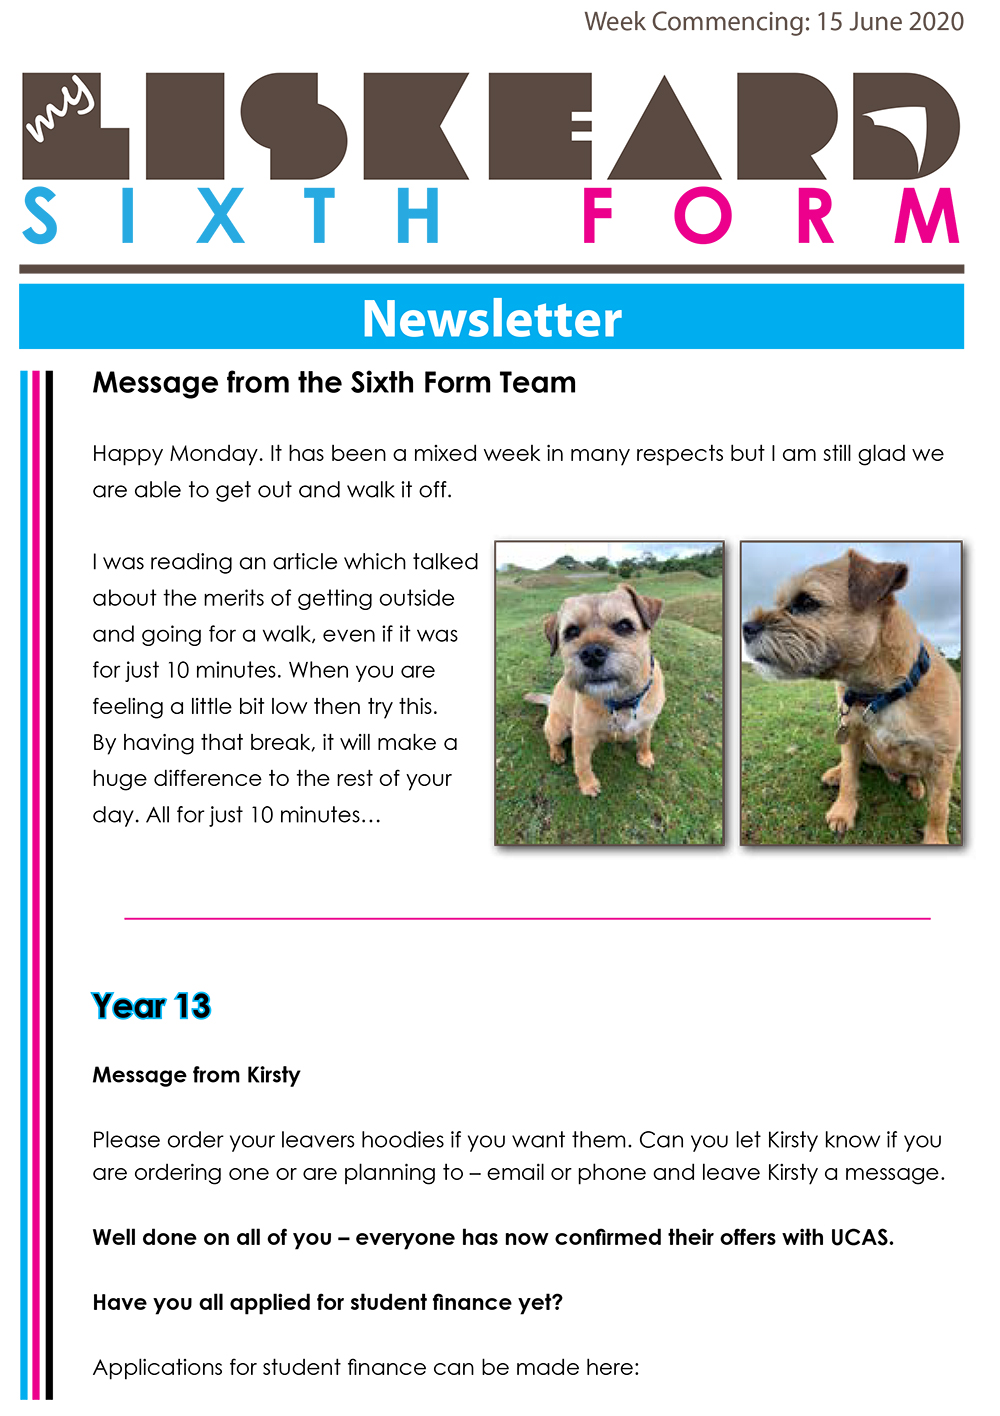 Sixth Form Newsletter 15 6 20 1